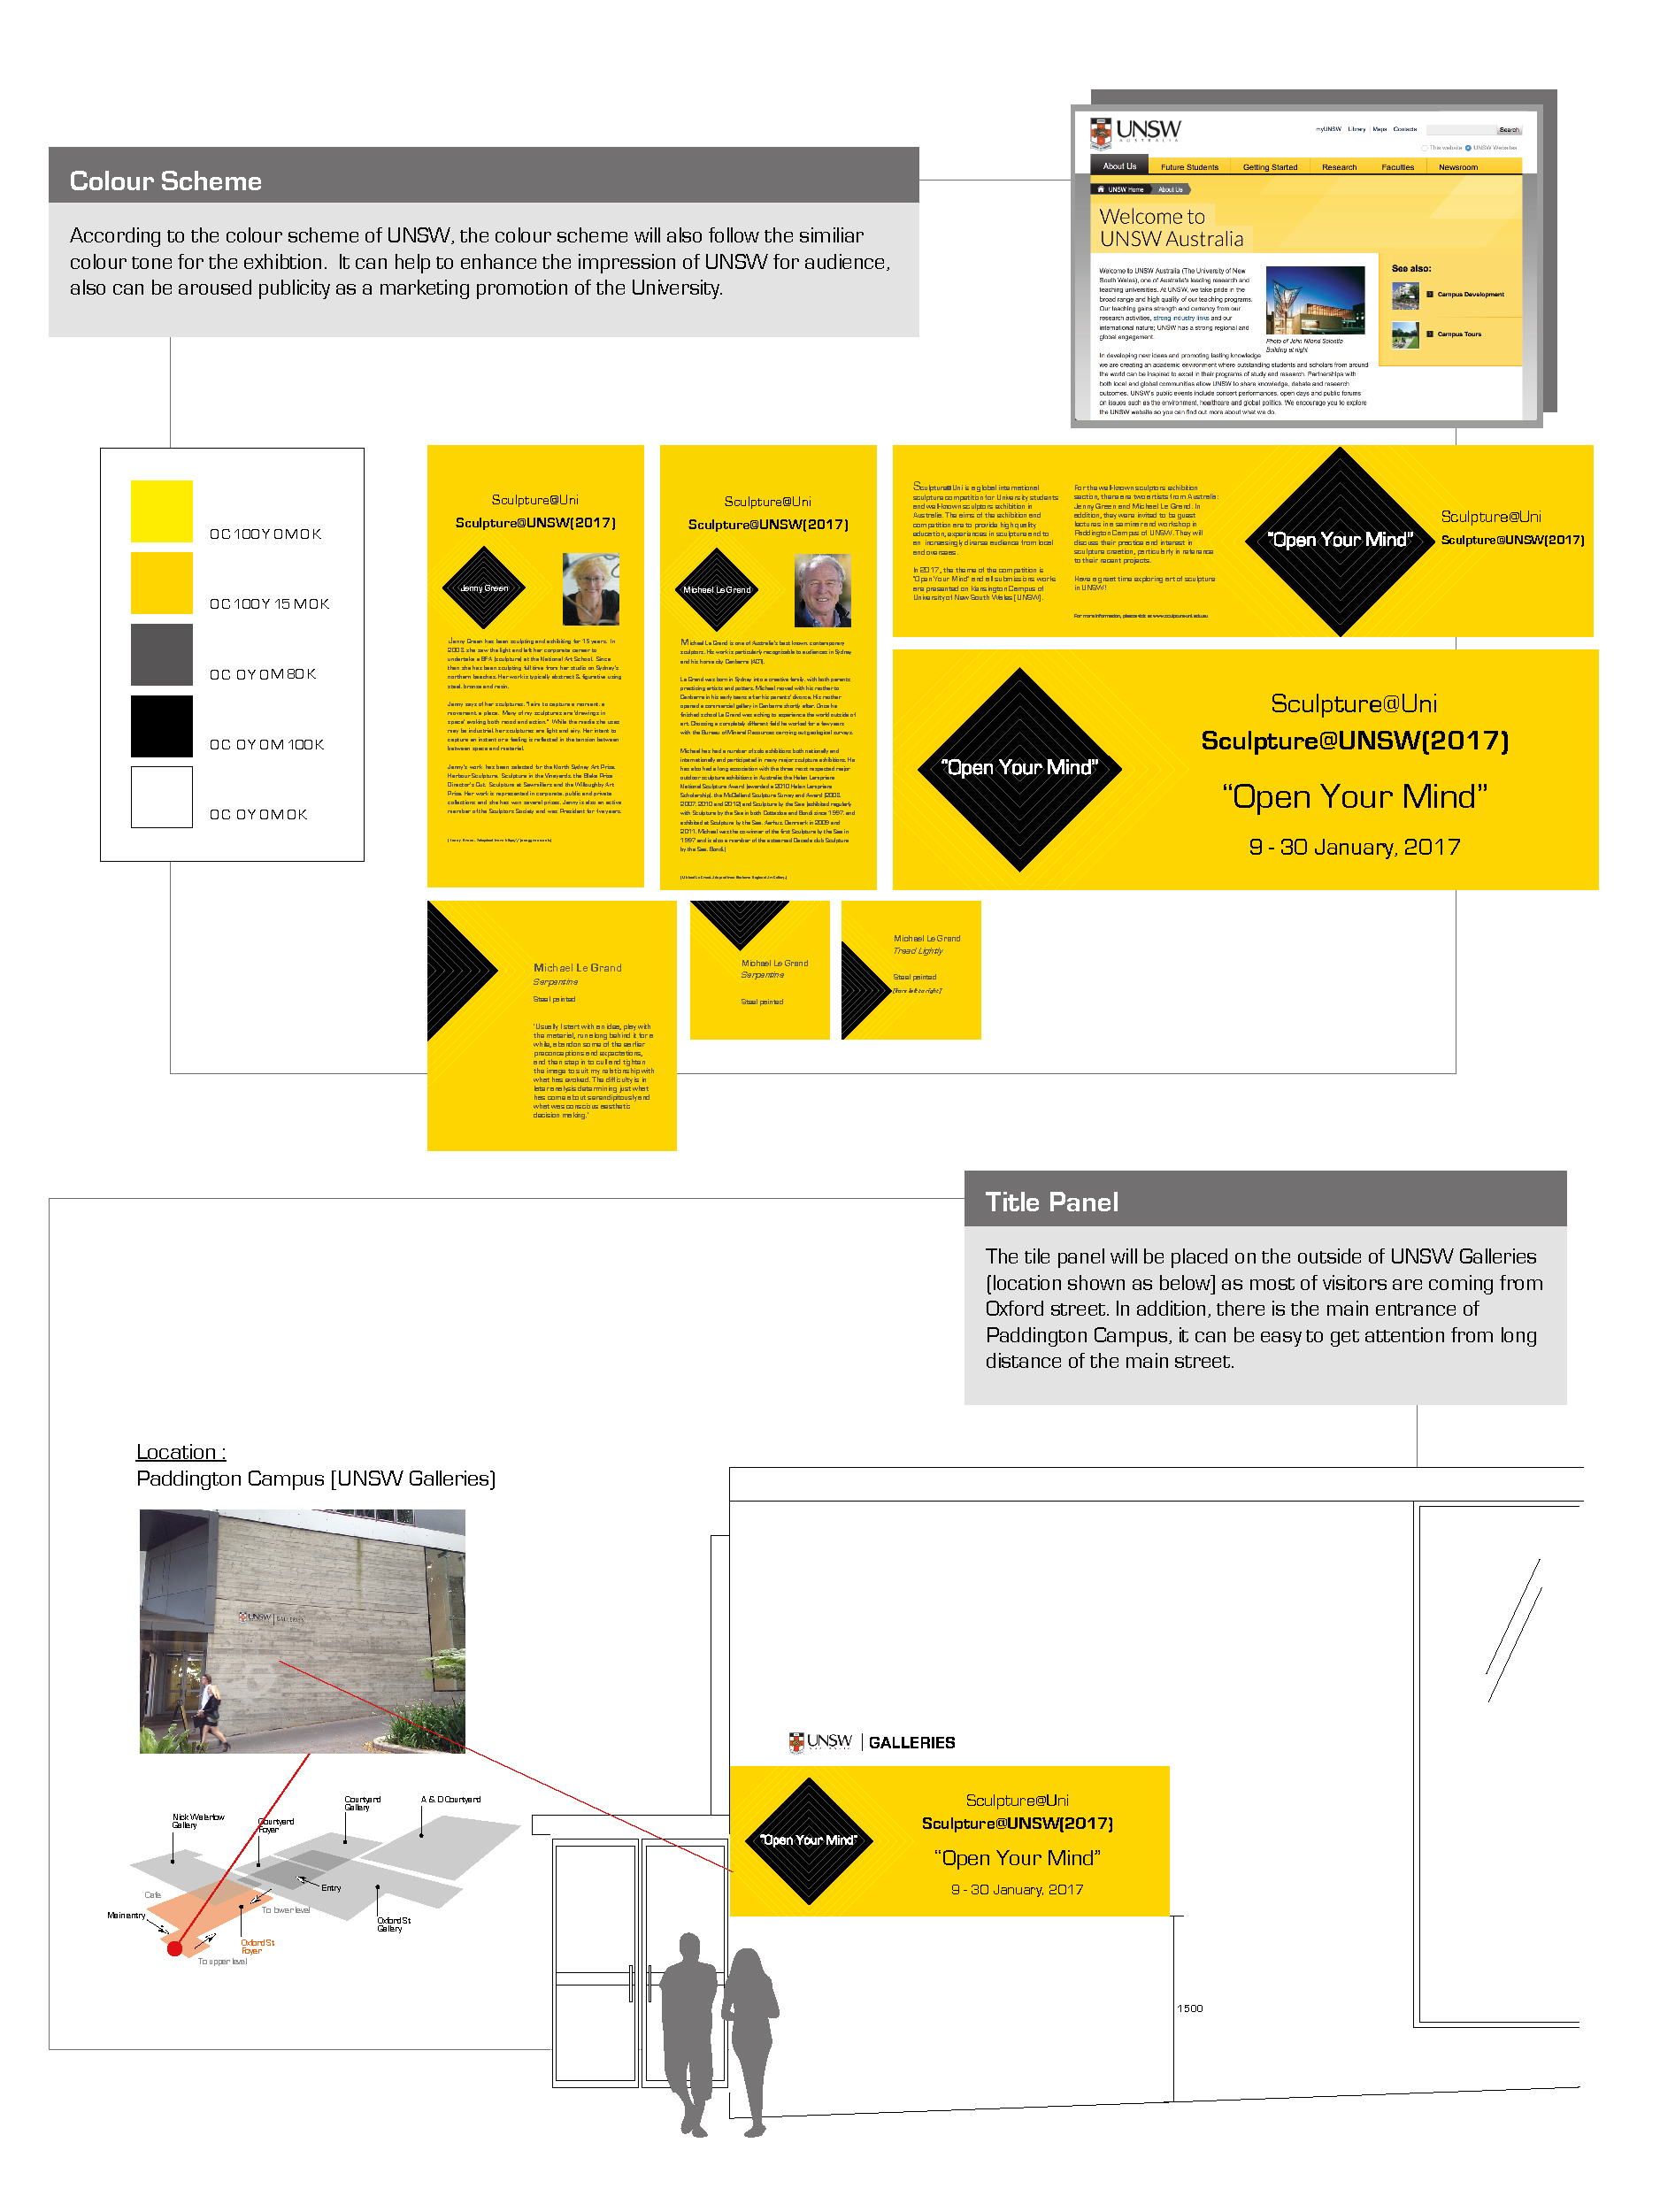 Exhibition Design Plan 2